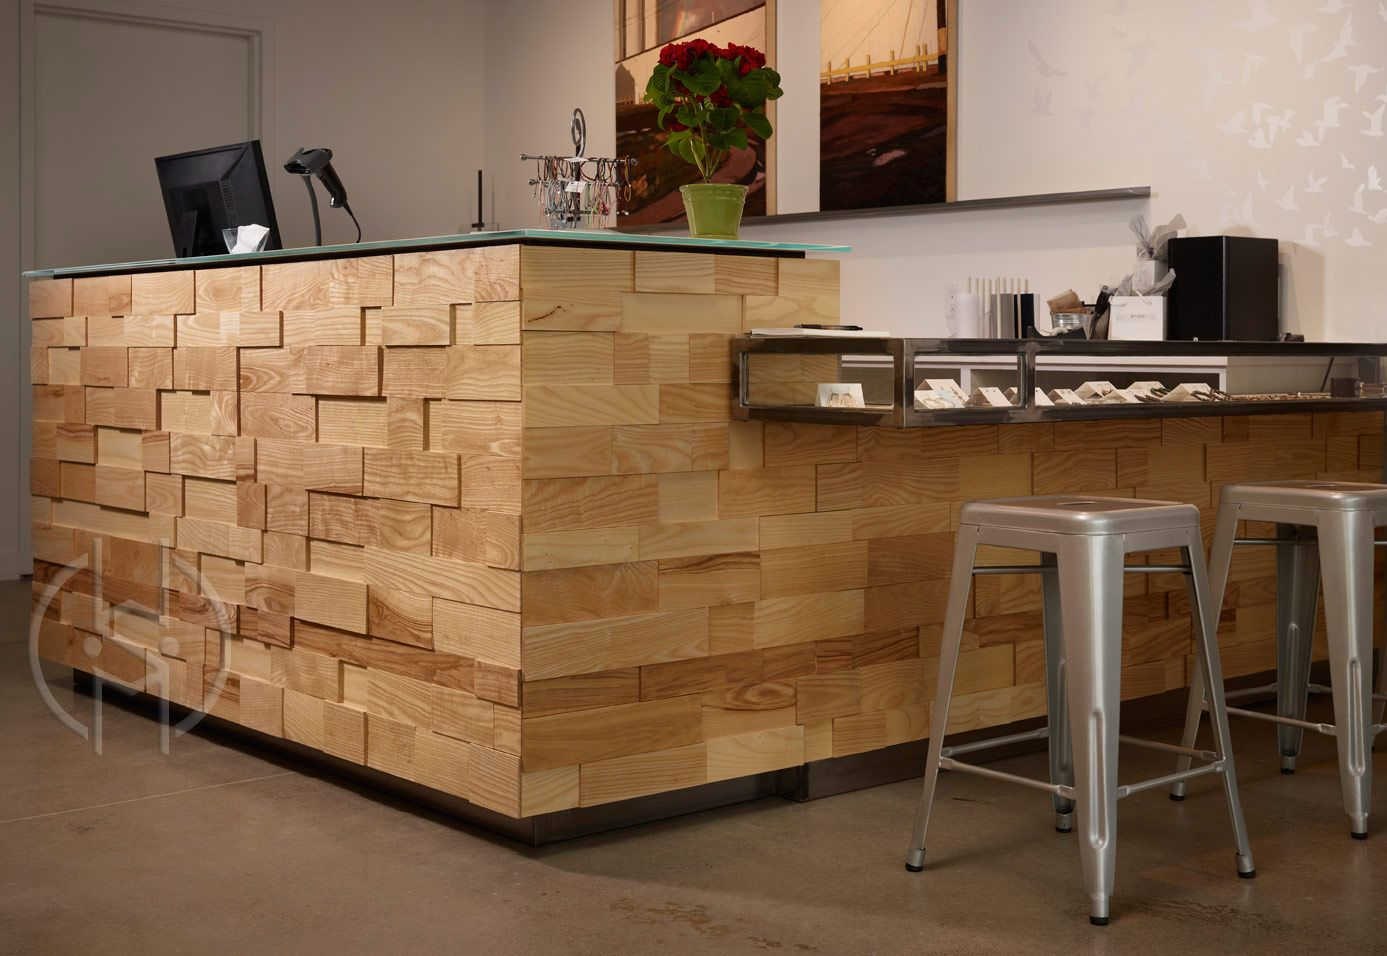 Kitchen Stores Denver Remodeling Honolulu A Cash Wrap For The New Reverie Boutique In 39s Lohi